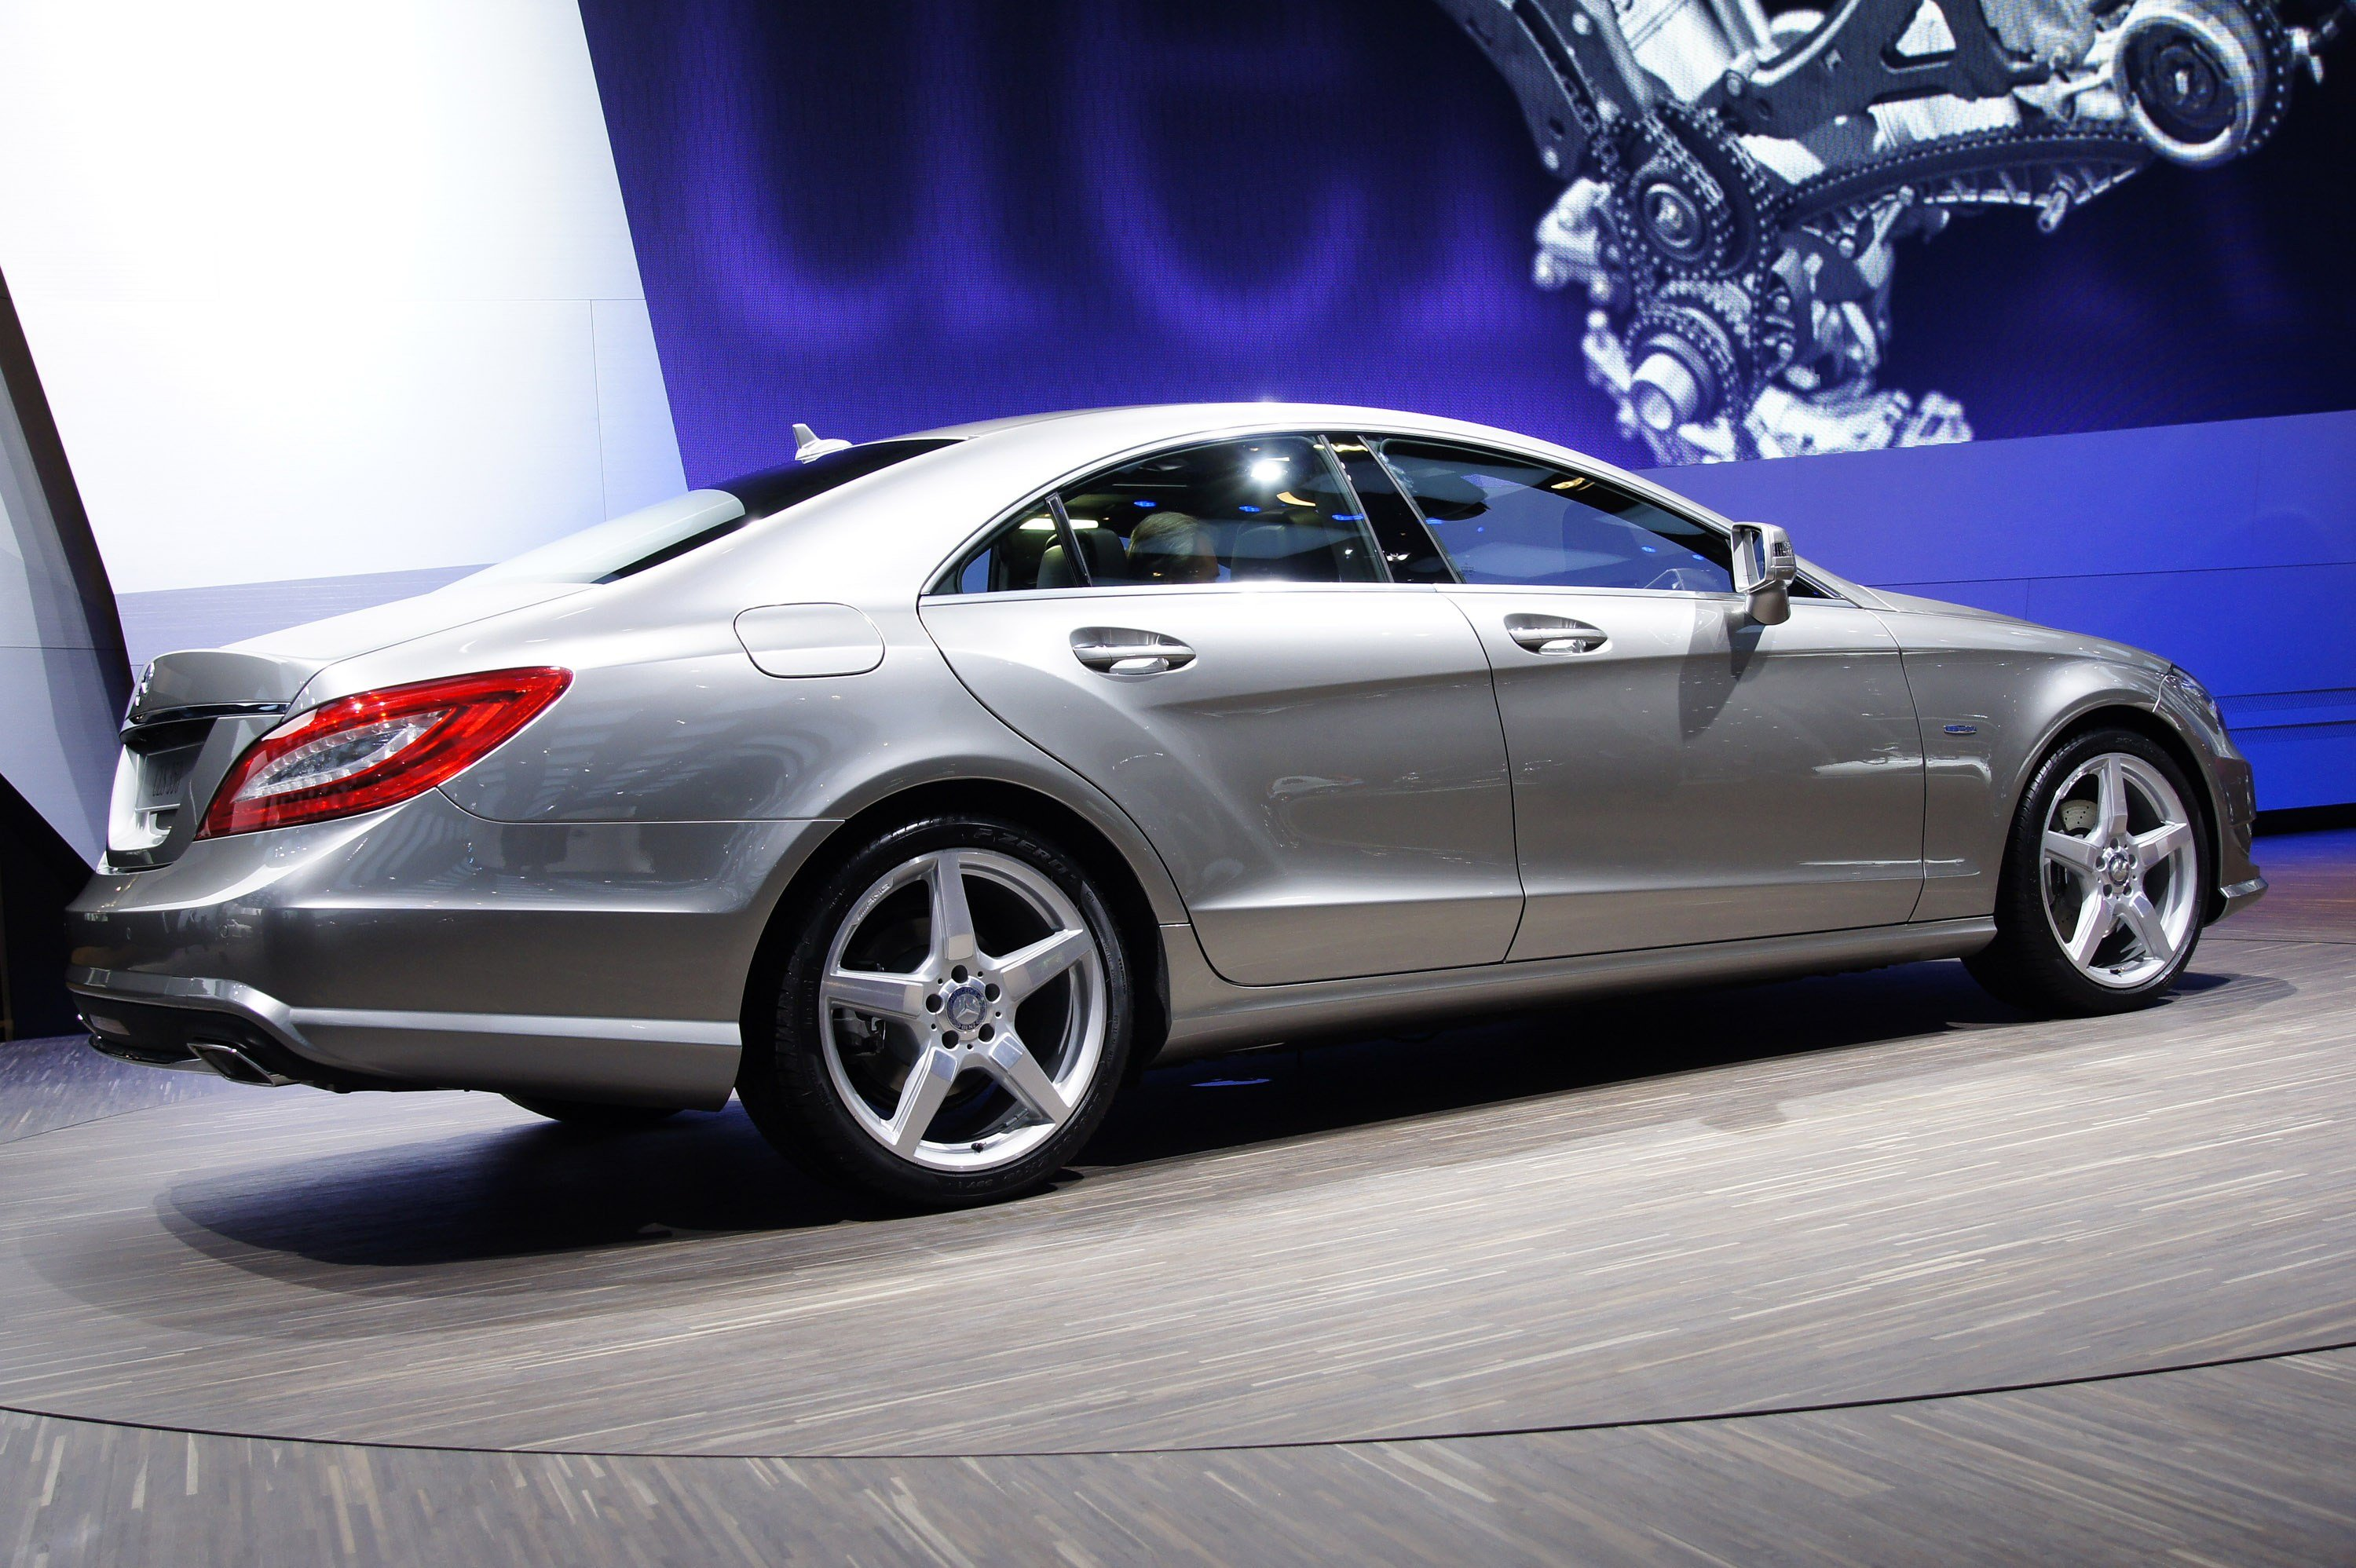 Latest Mercedes Benz Cls 350 Paris 2010 Picture 43287 Free Download